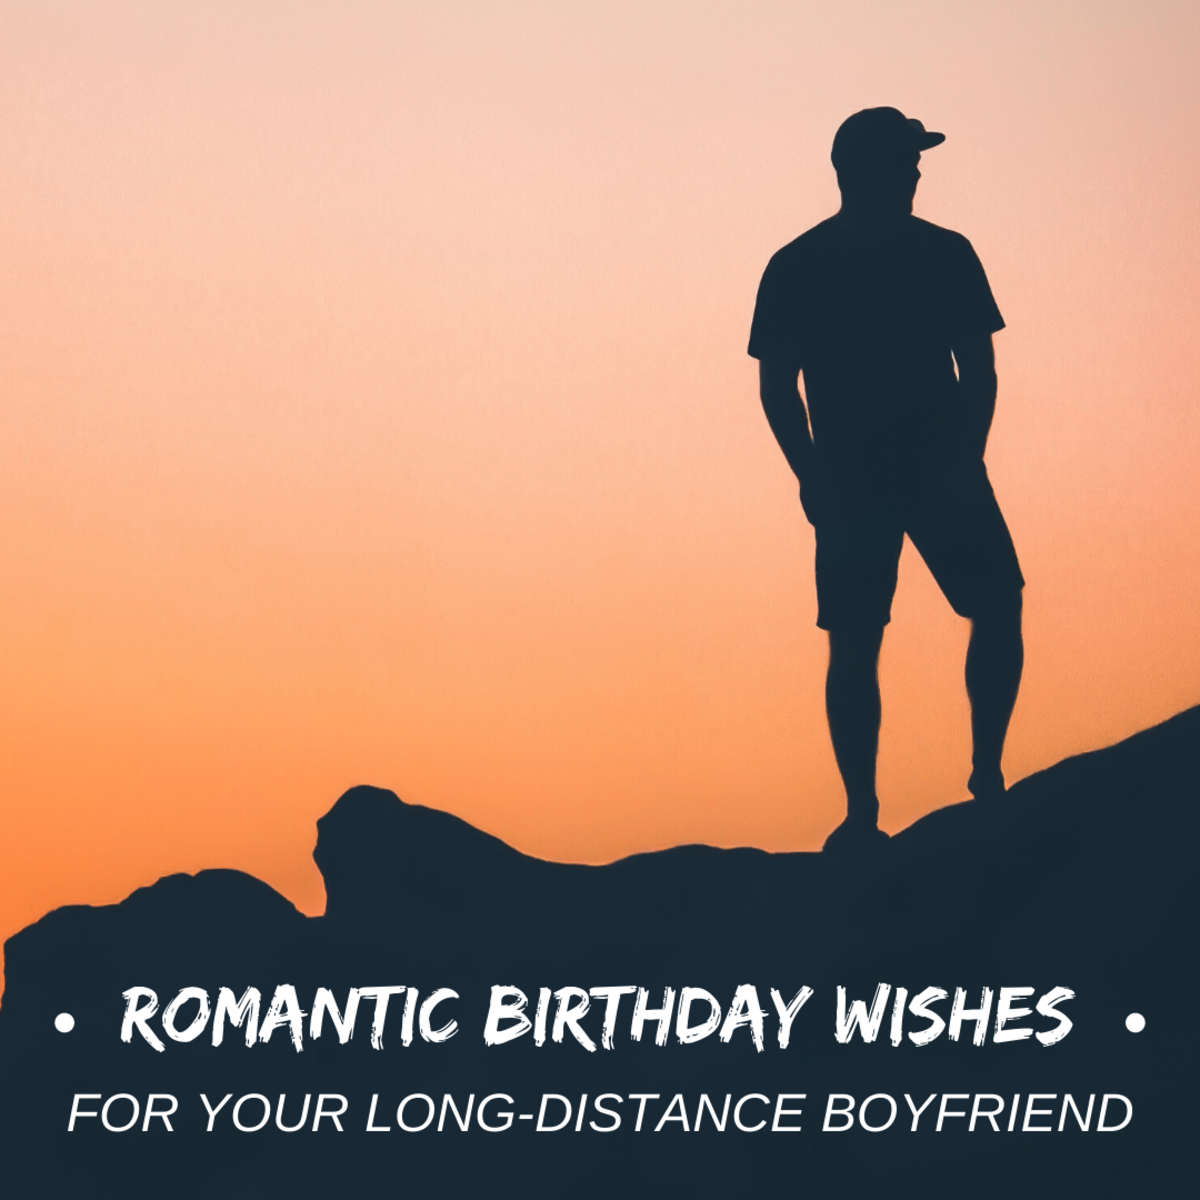 Heart-Touching Happy Birthday Wishes for a Long-Distance Boyfriend